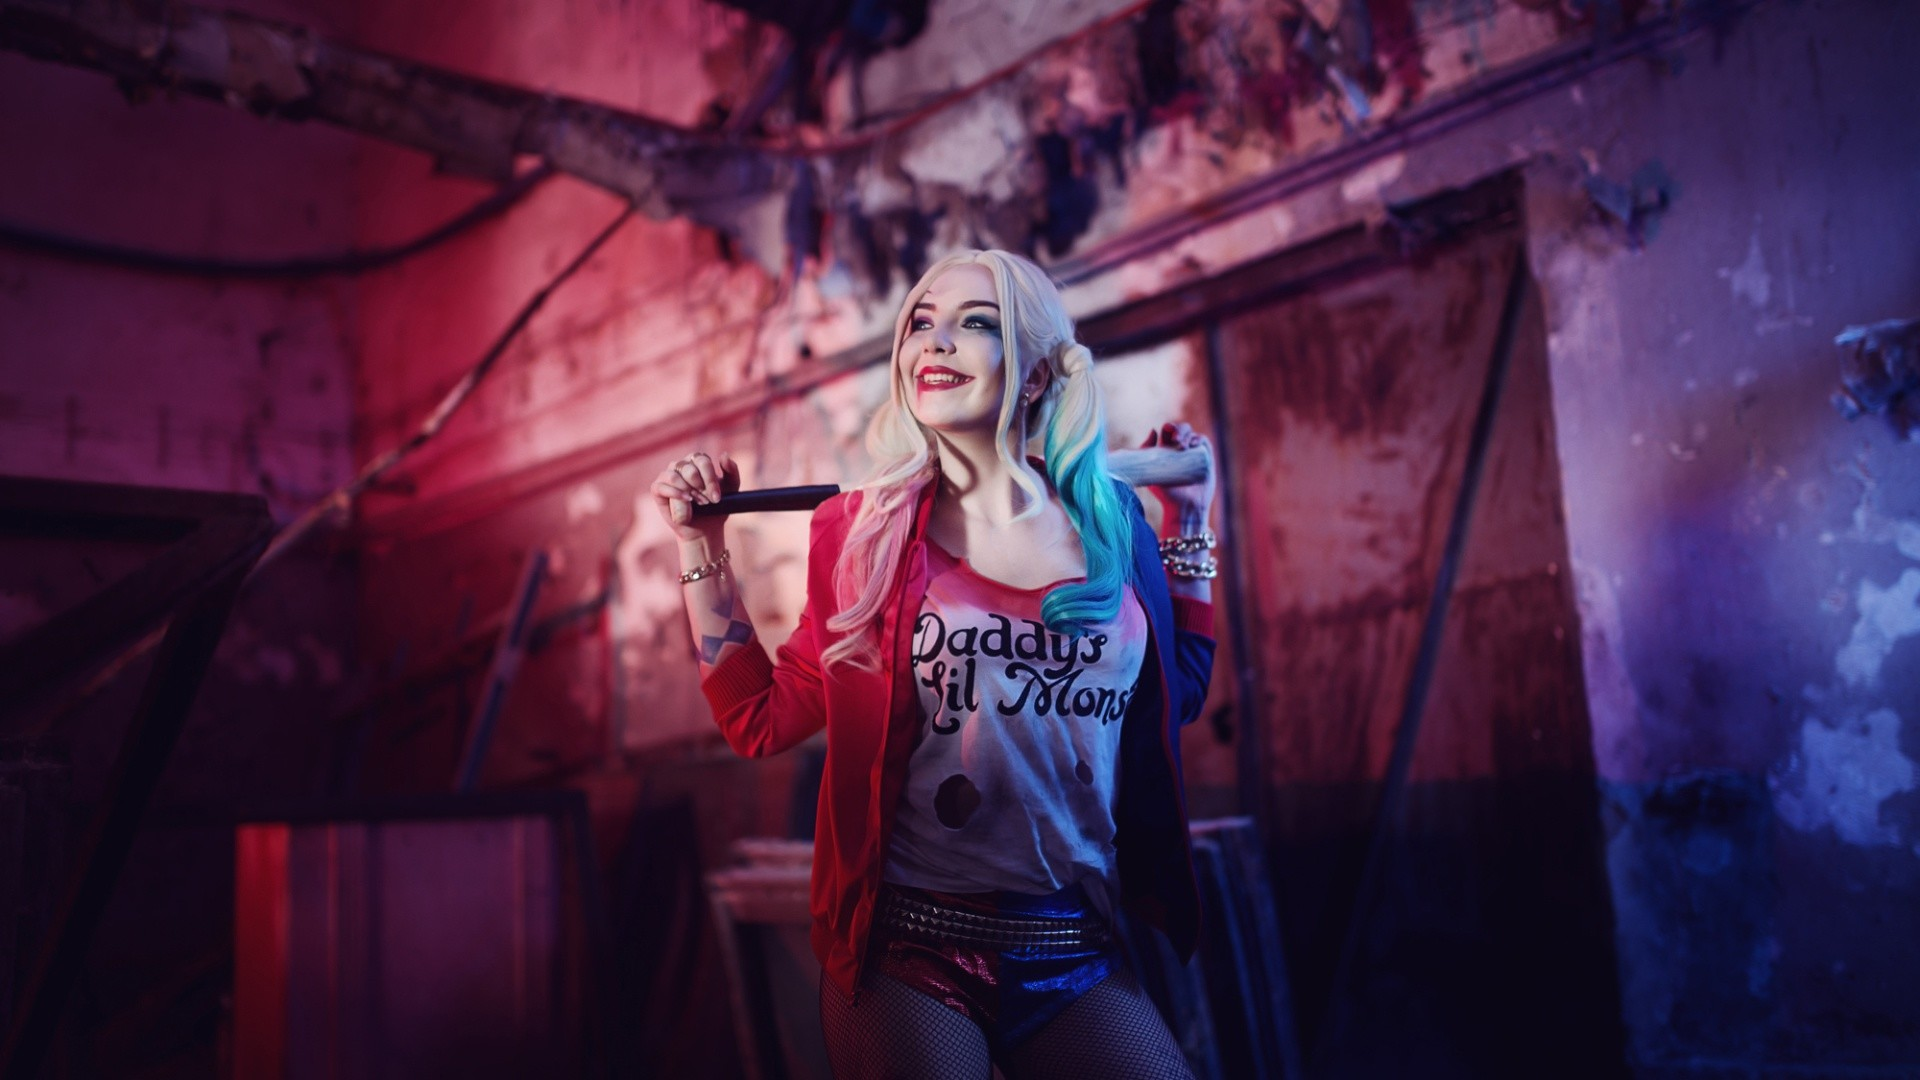 Suicide Squad Harley Quinn Cosplay Costume Wallpaper 12524